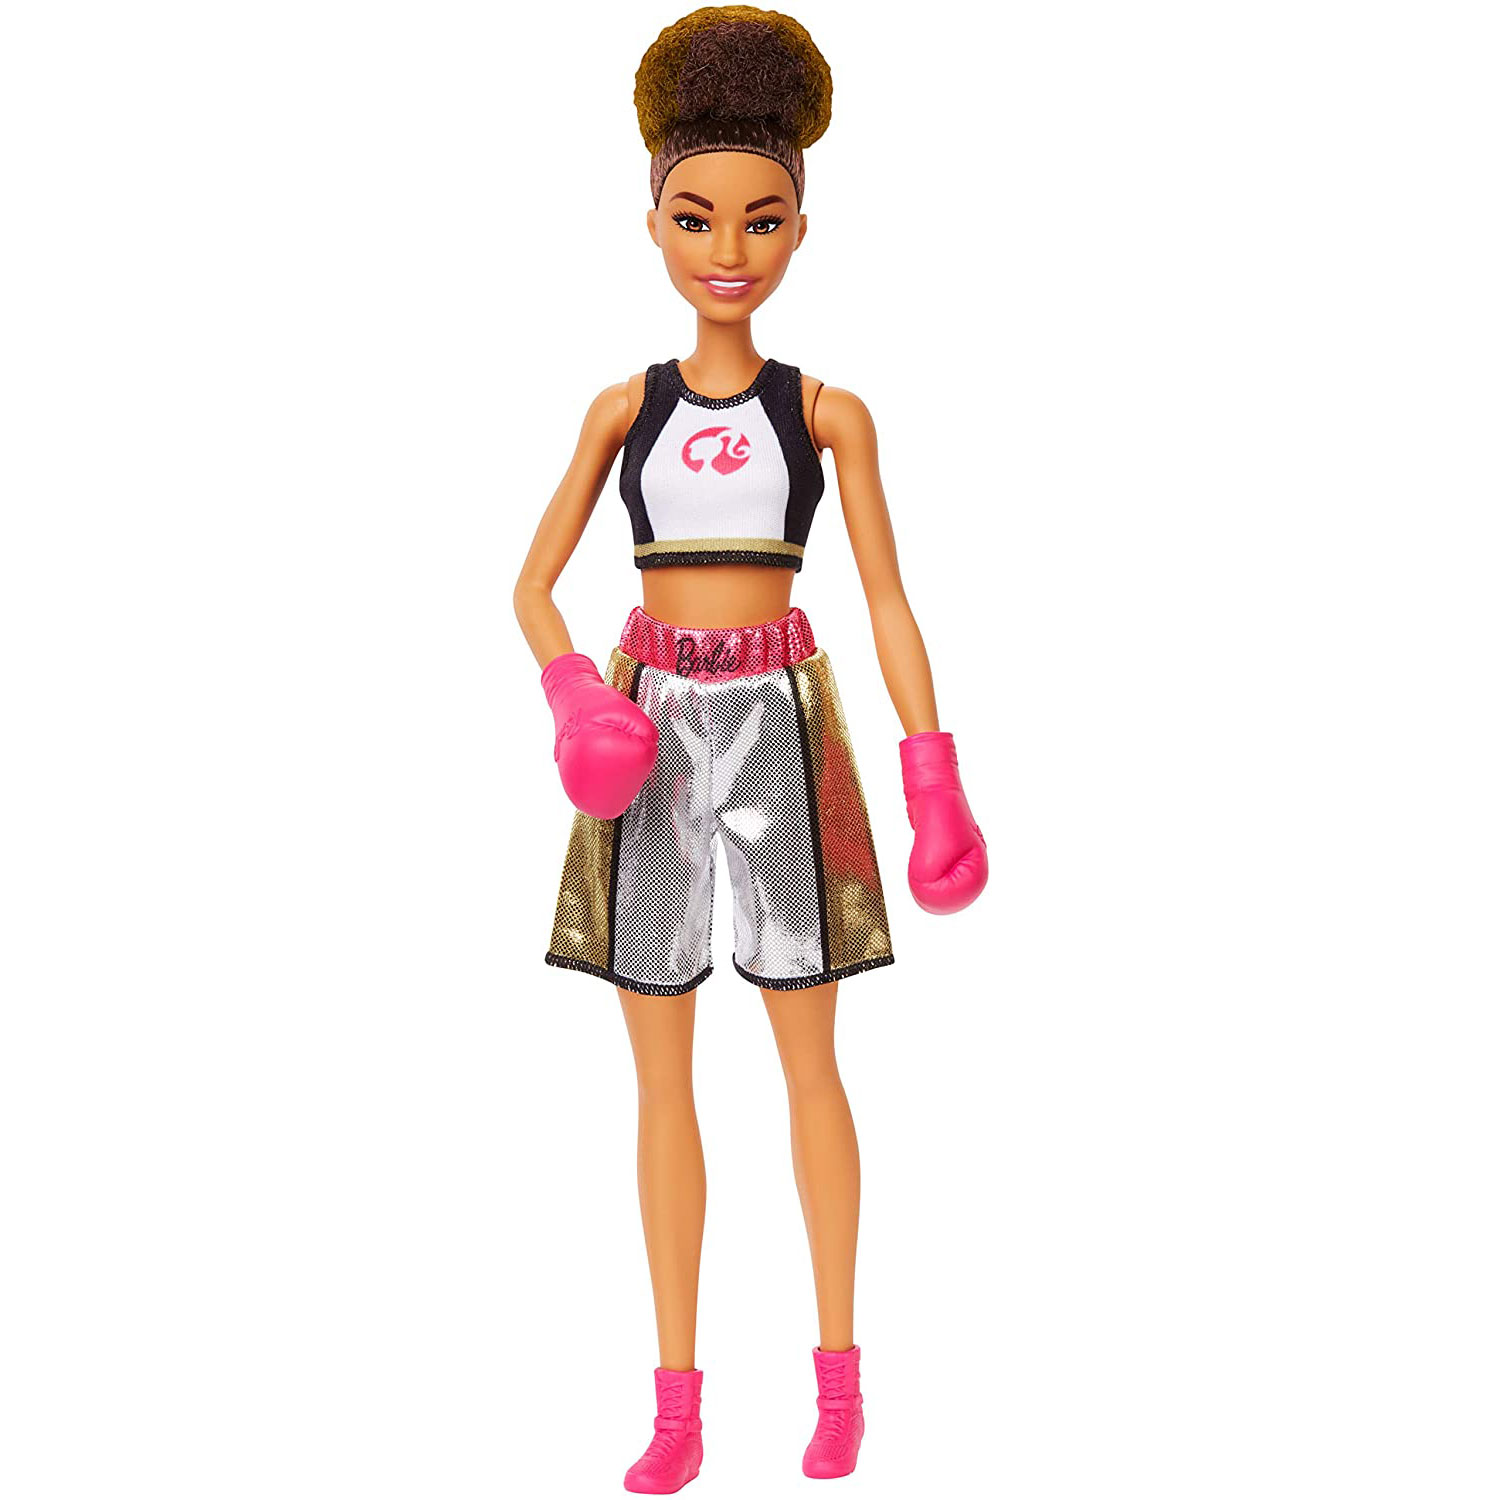 barbie boxer doll brunette wearing boxing outfit pink boxing gloves